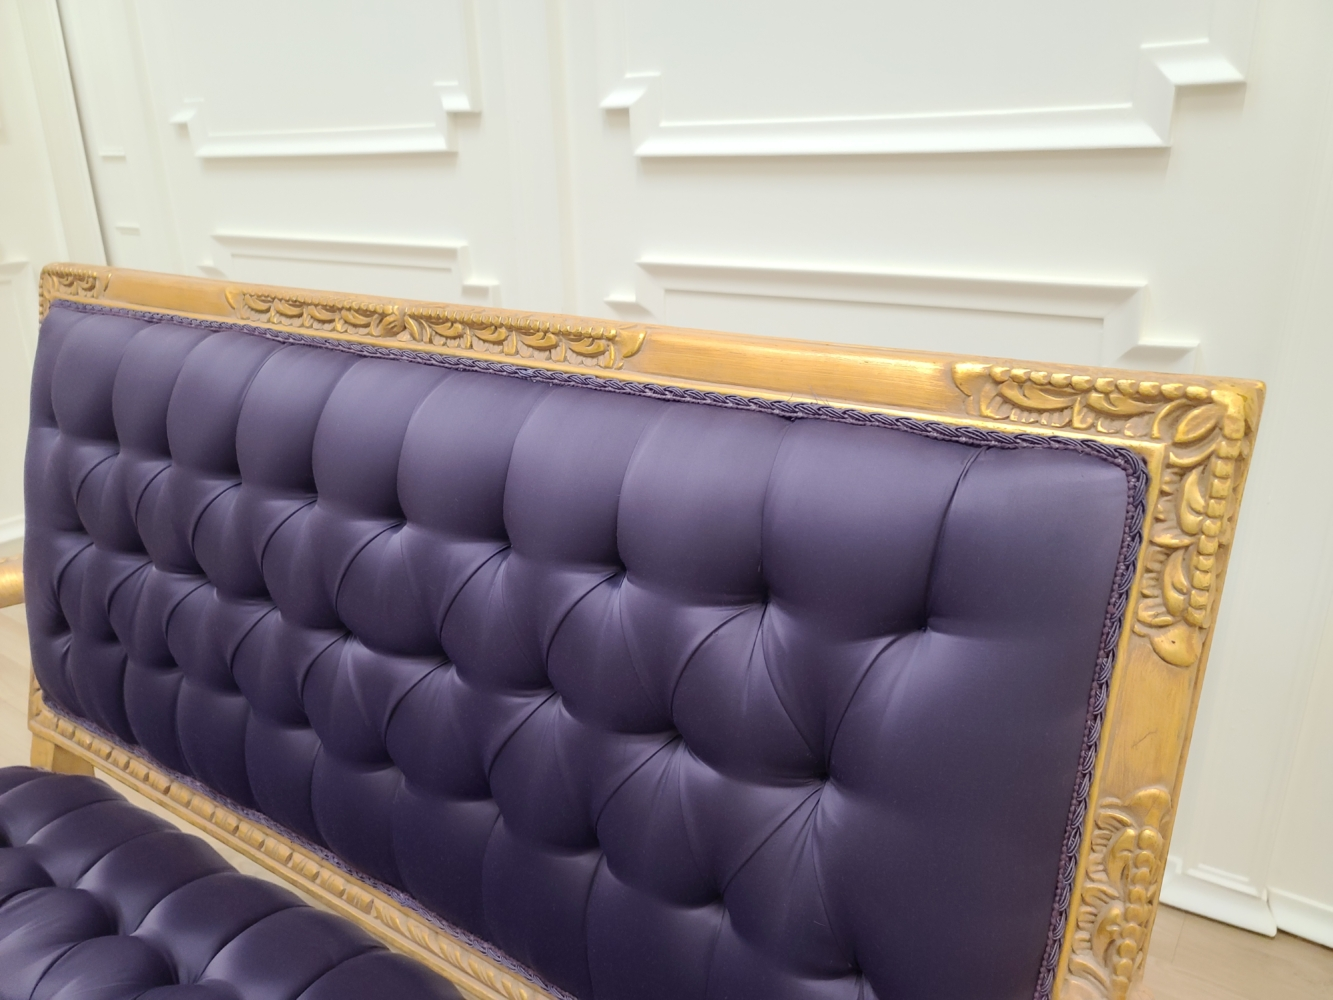 French Settee/Antique Gold Leaf Finish/ Hand Carved Beech Wood Frame/ Dark Purple Tufted Satin